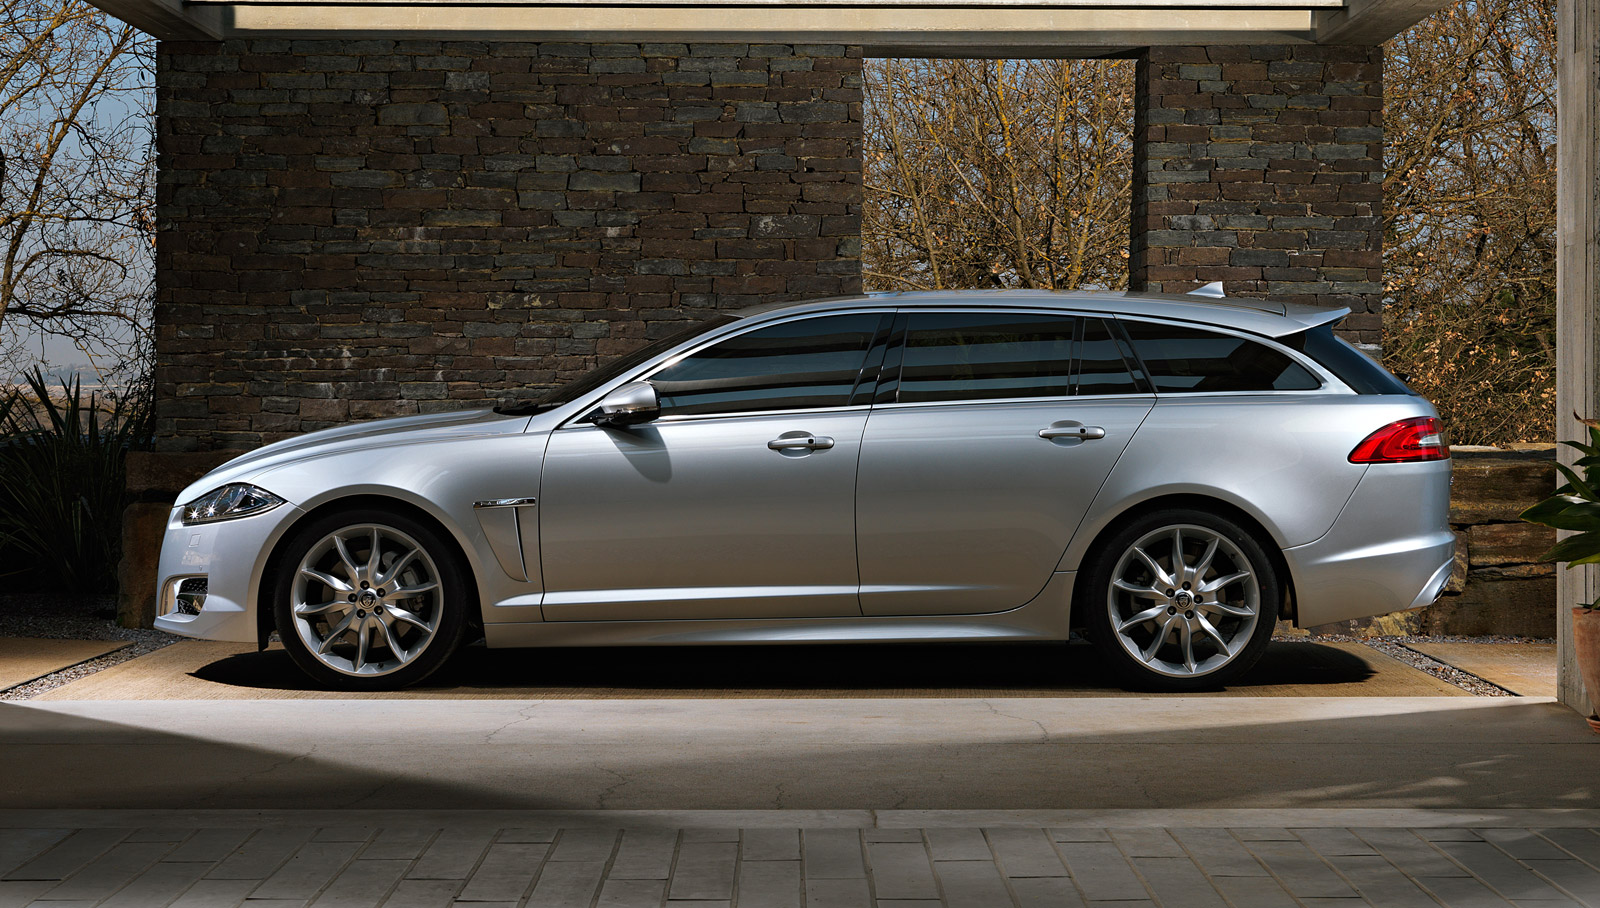 2013 Jaguar XF Sportbrake Design And Driving Video